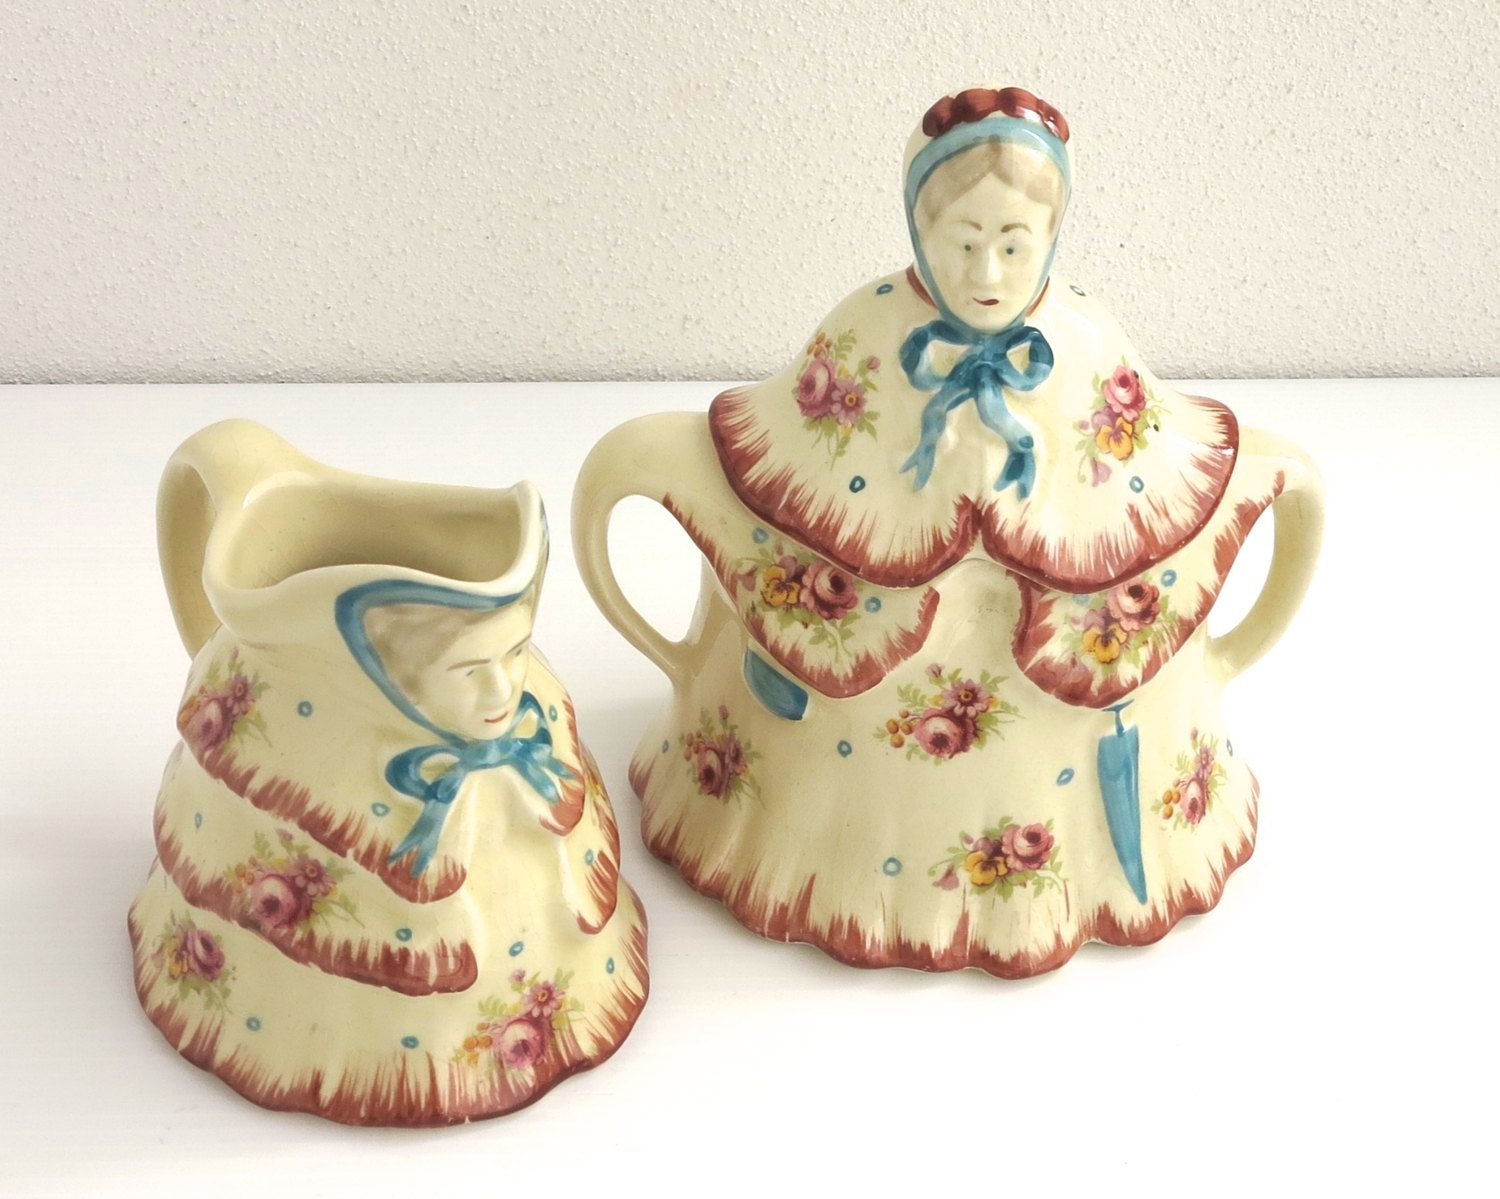 Vintage Little Old Lady sugar bowl and creamer, with old ladies in crinoline dresses, Staffordshire, England, novelty set, 1930s / 40s by CardCurios on Etsy